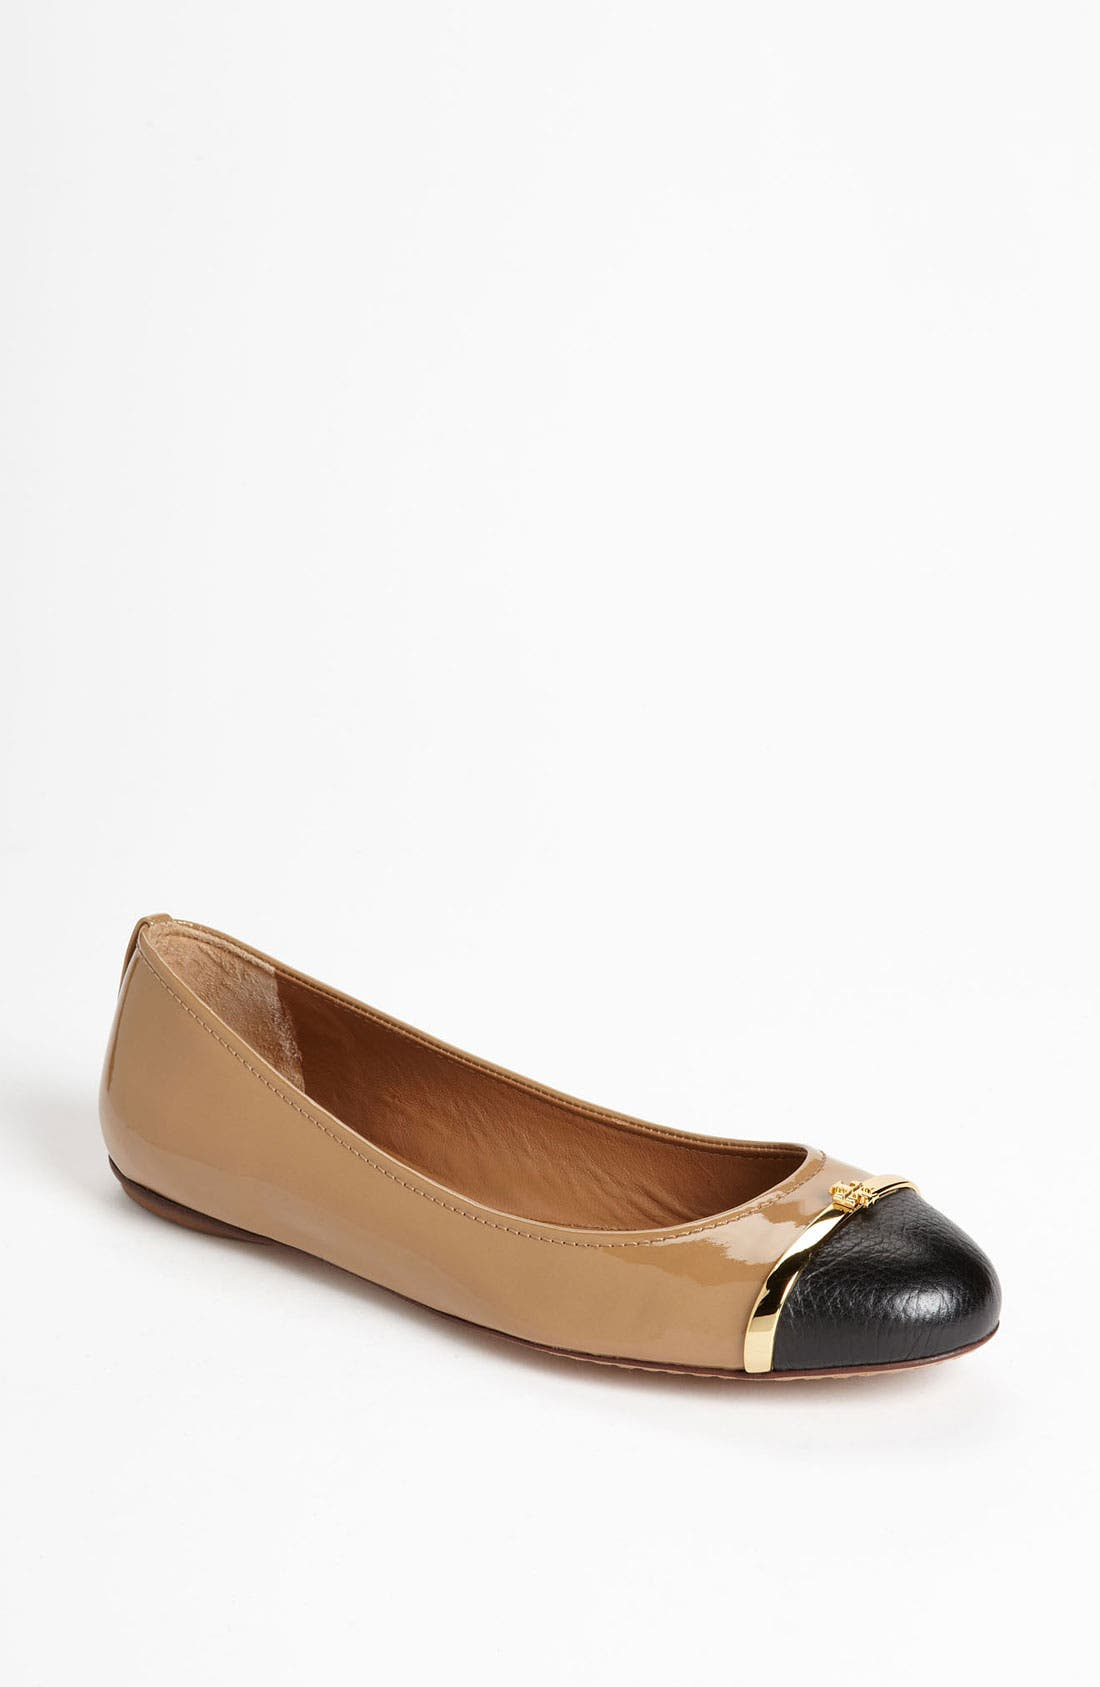 Main Image - Tory Burch 'Pacey' Ballet Flat